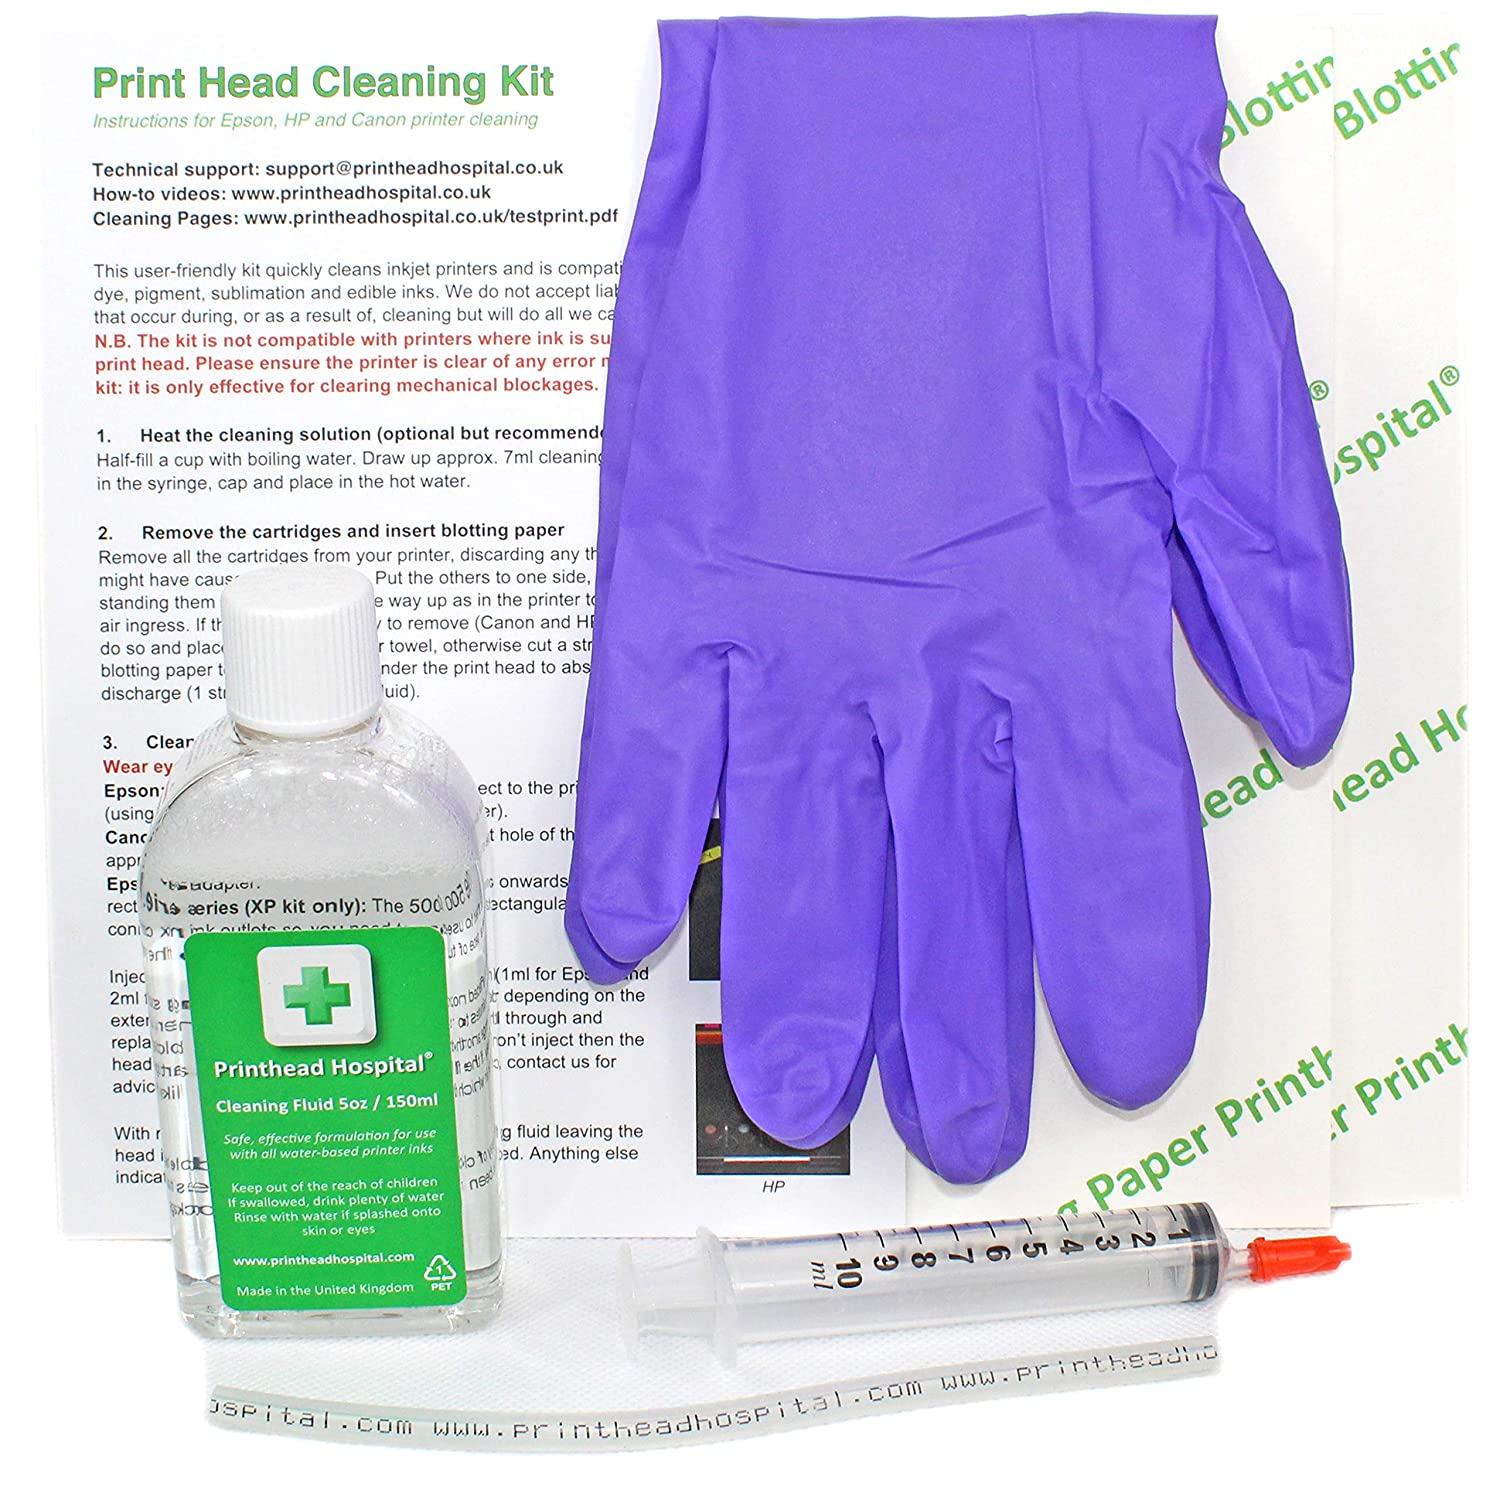 New Print Head Cleaning Kit for Epson Canon Printers